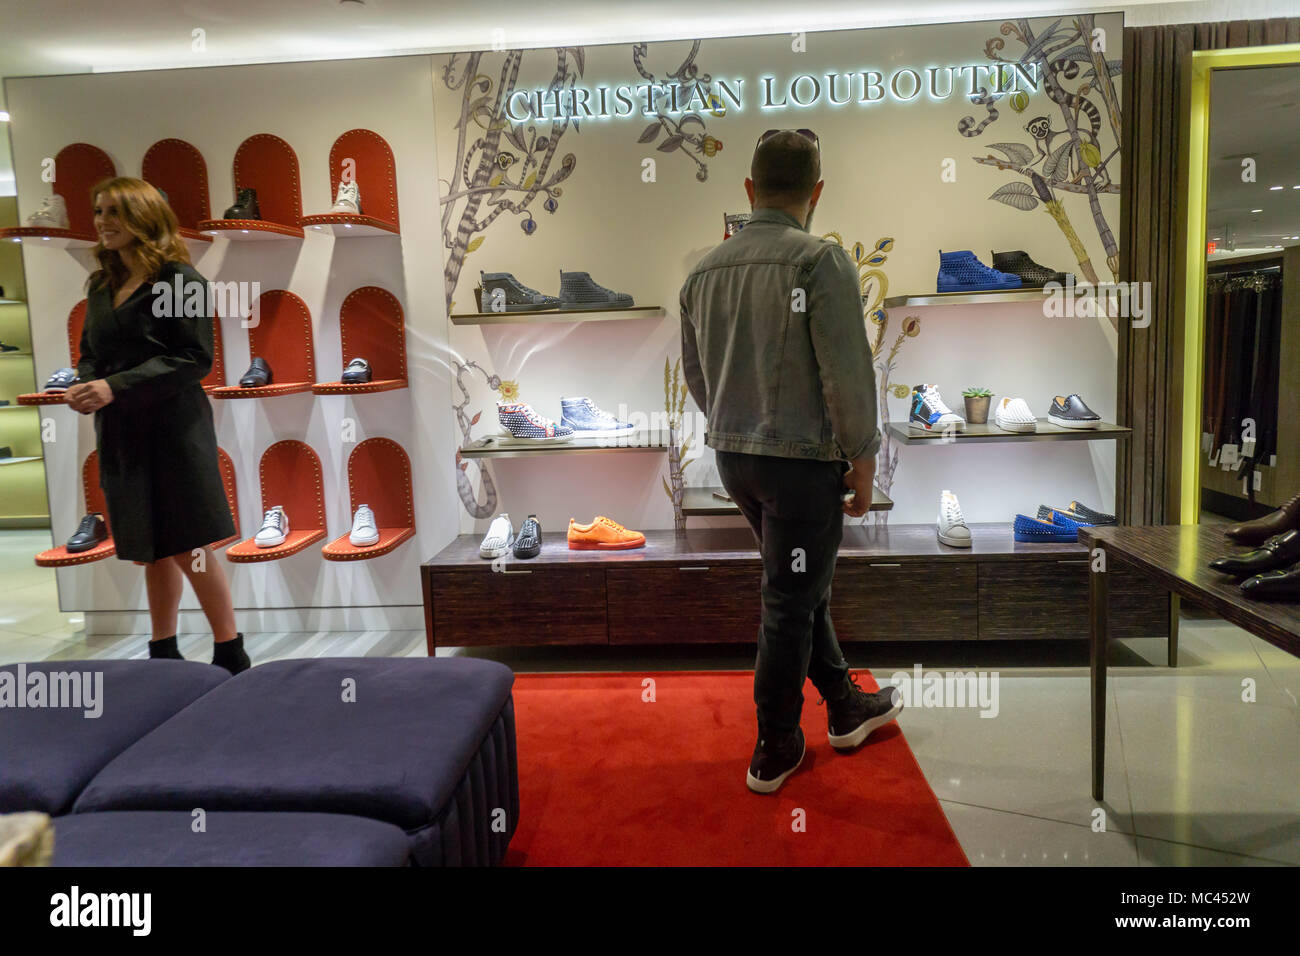 christian louboutin cannes store